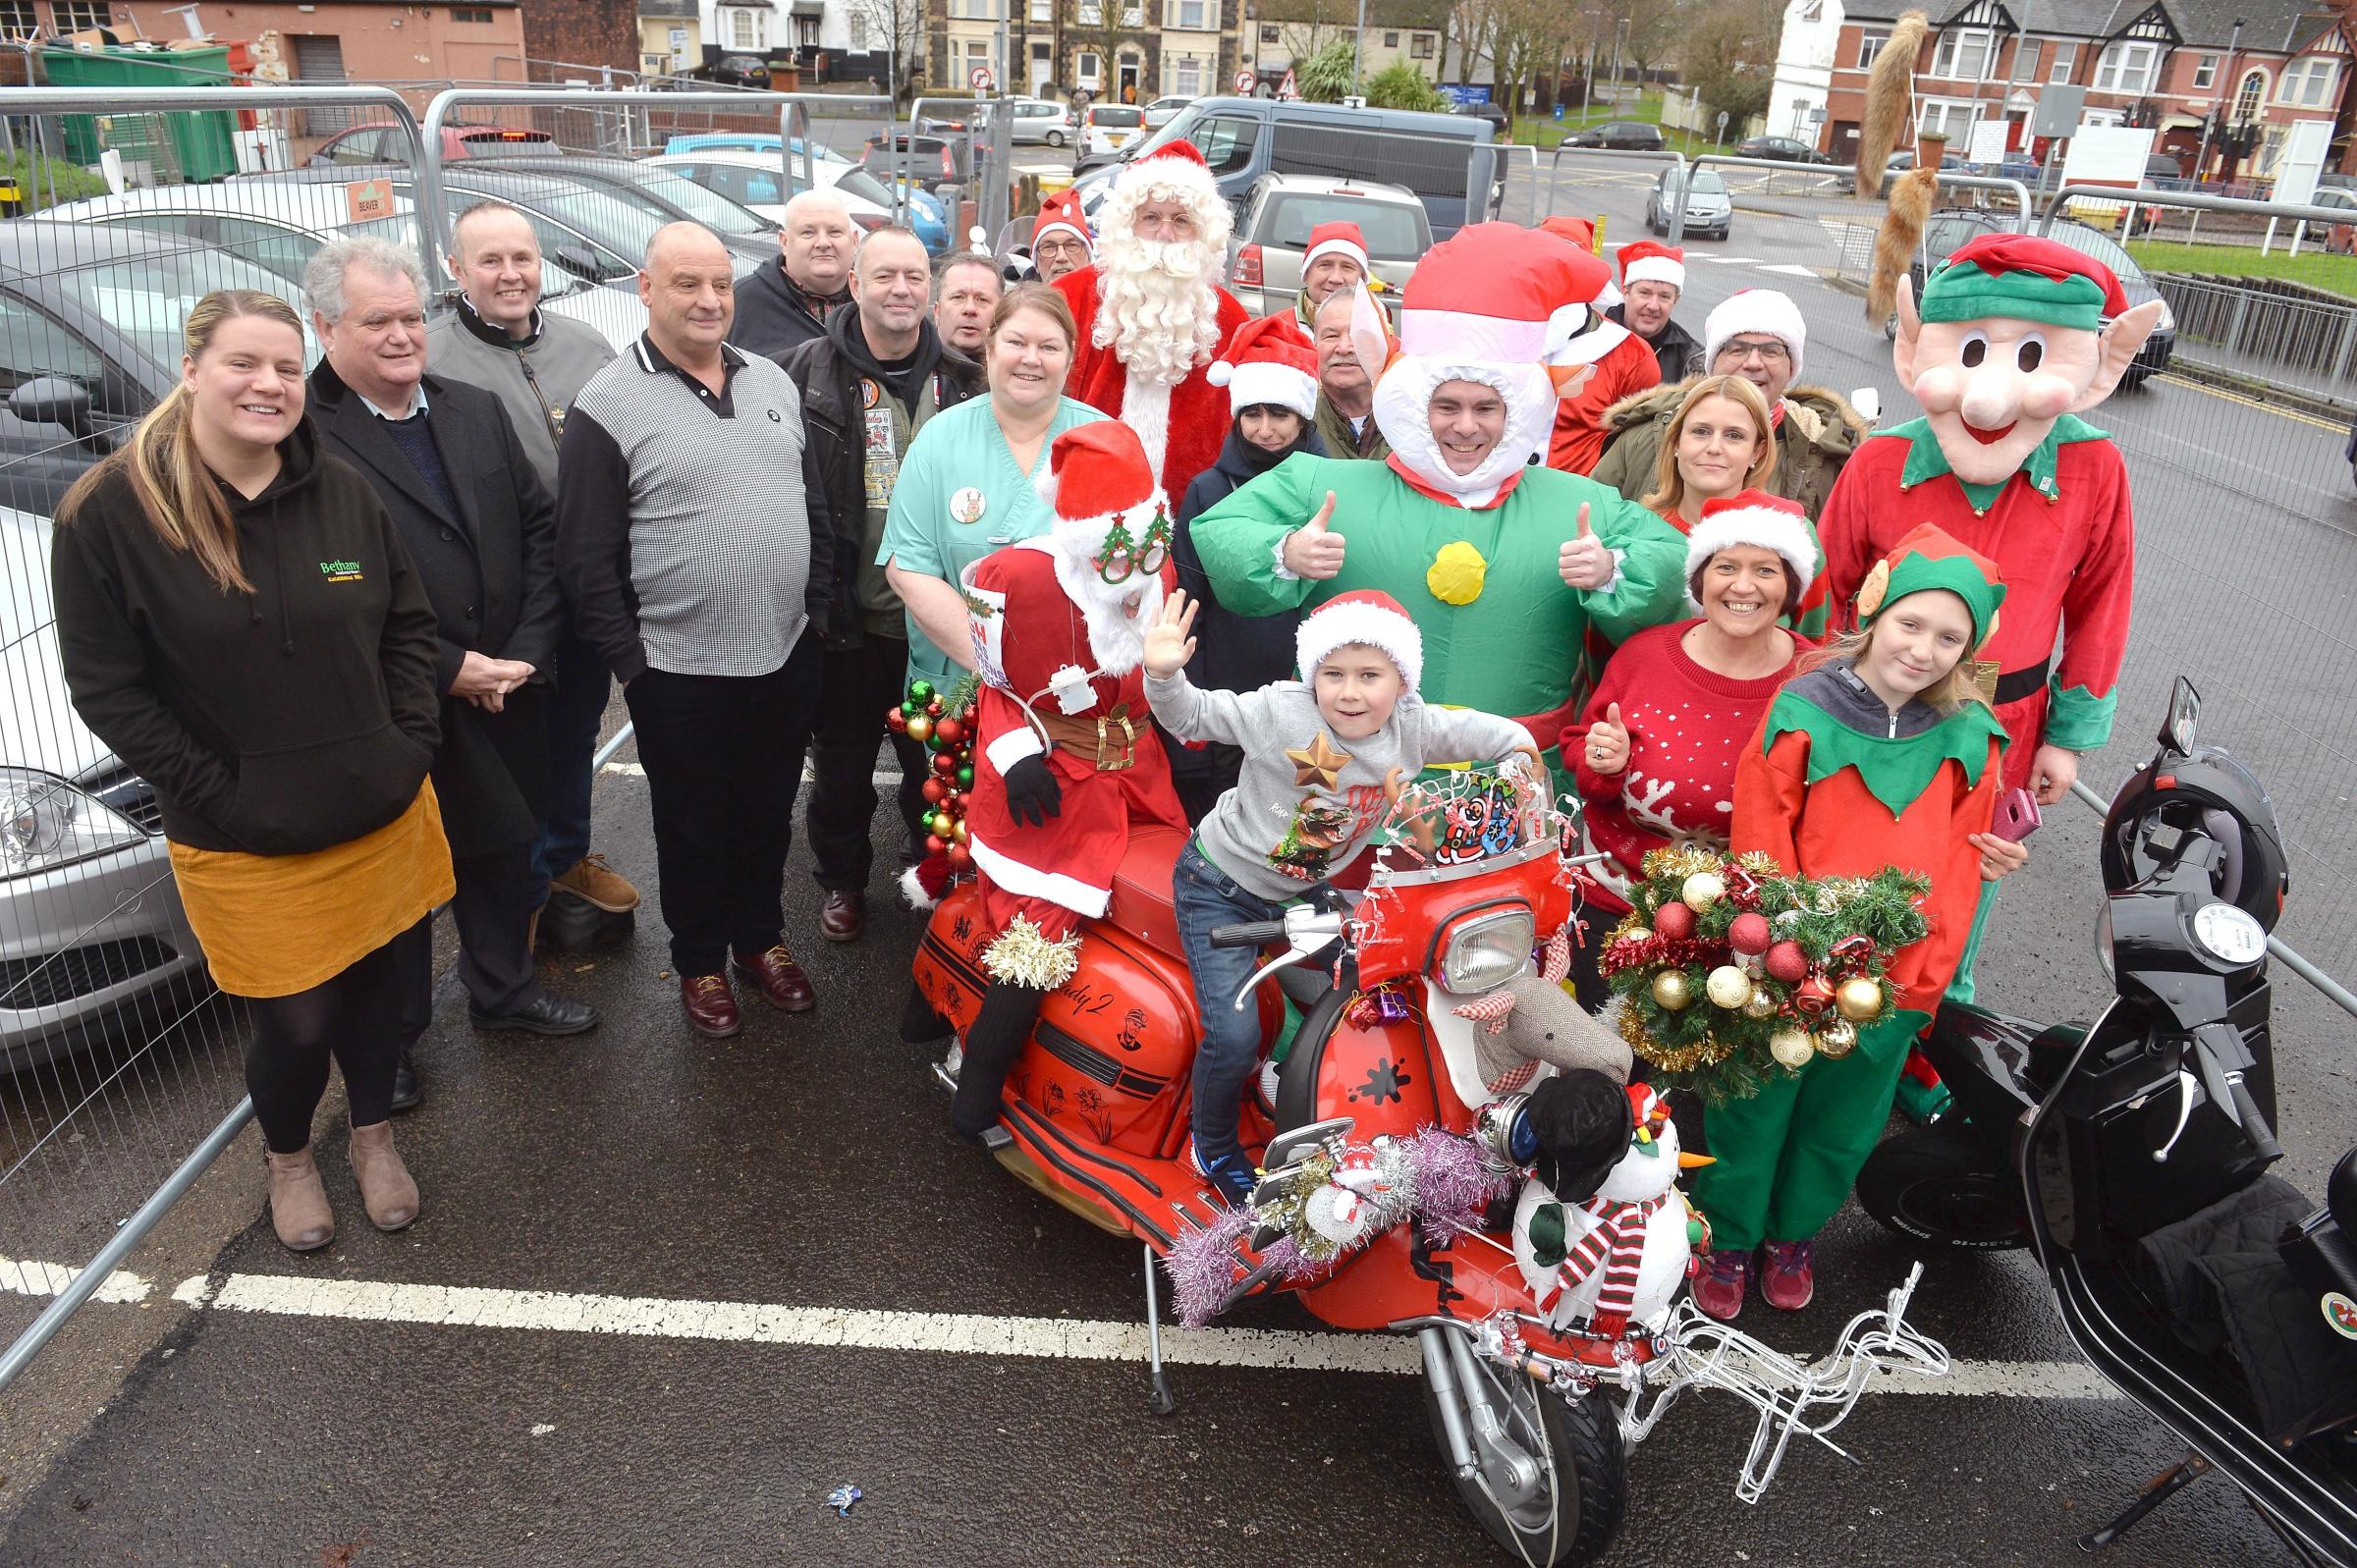 Chepstow Round Table and Cwmbran Scooter Club prepare to give presents to young patients at the Royal Gwent Hospital.